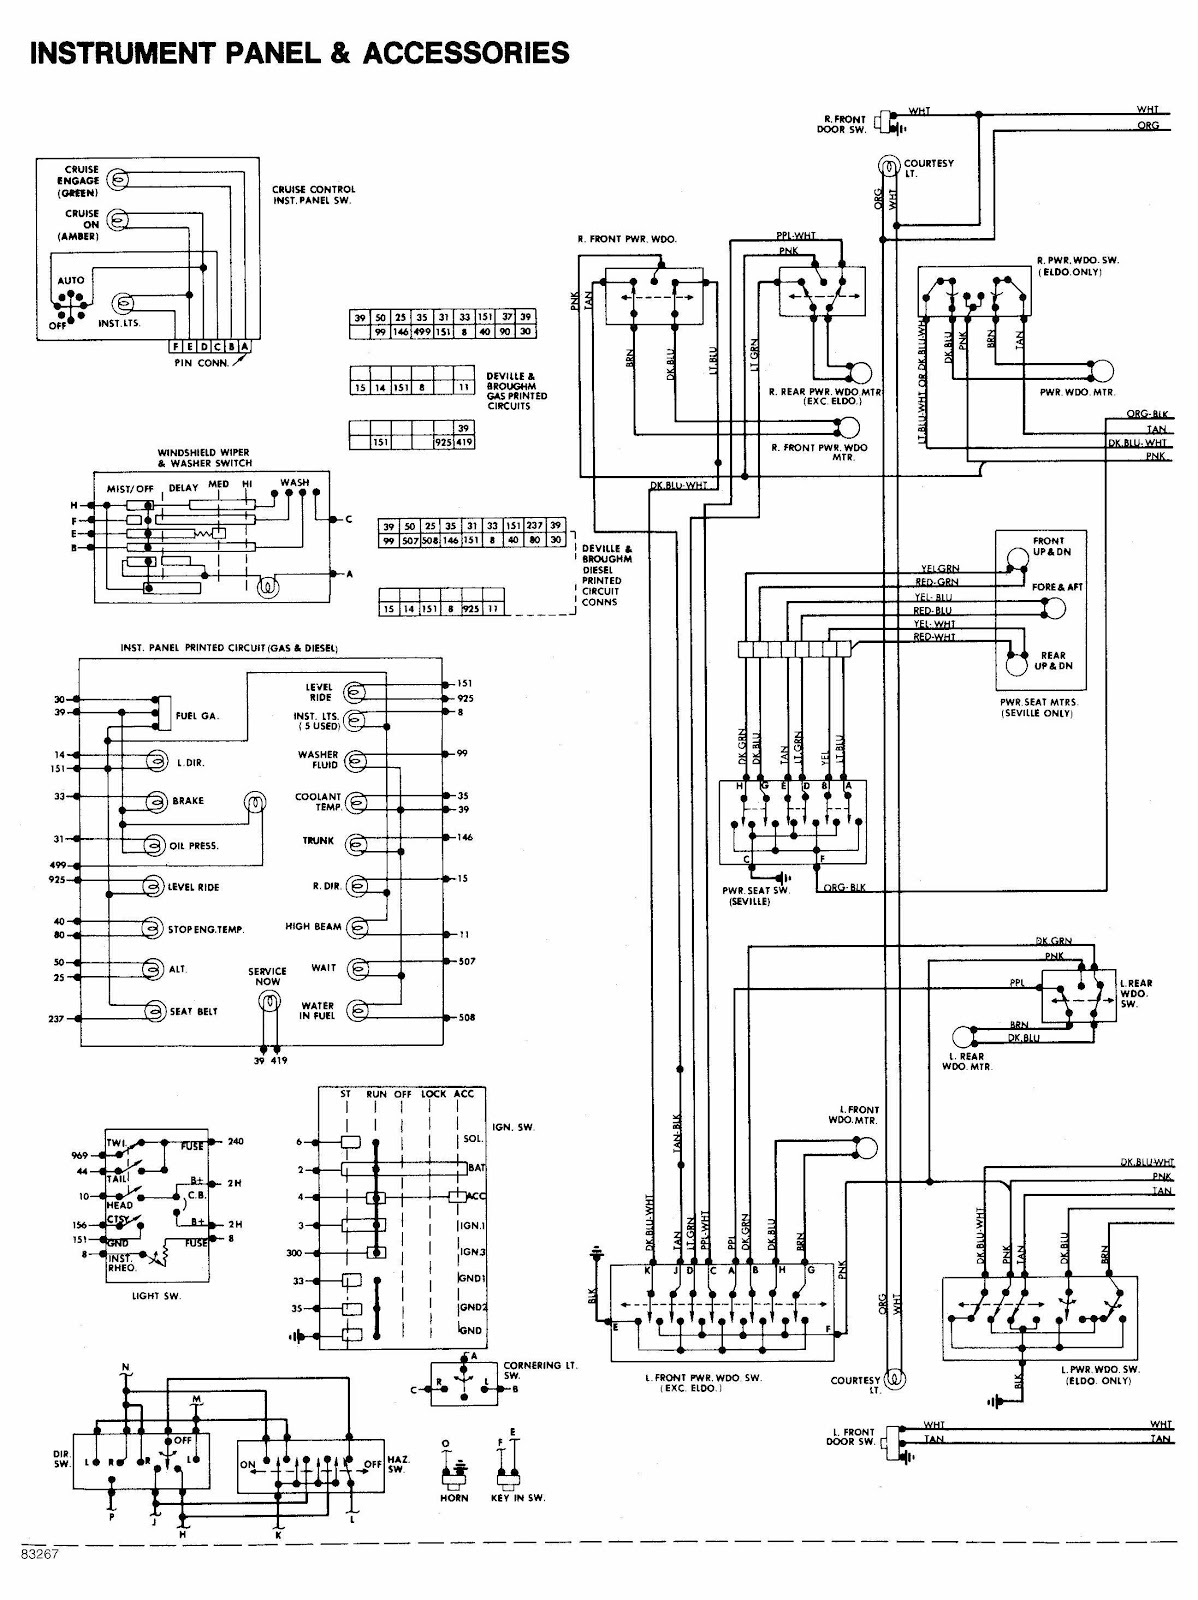 Cadillac De Ville Instrument Panel And Accessories Wiring Diagram